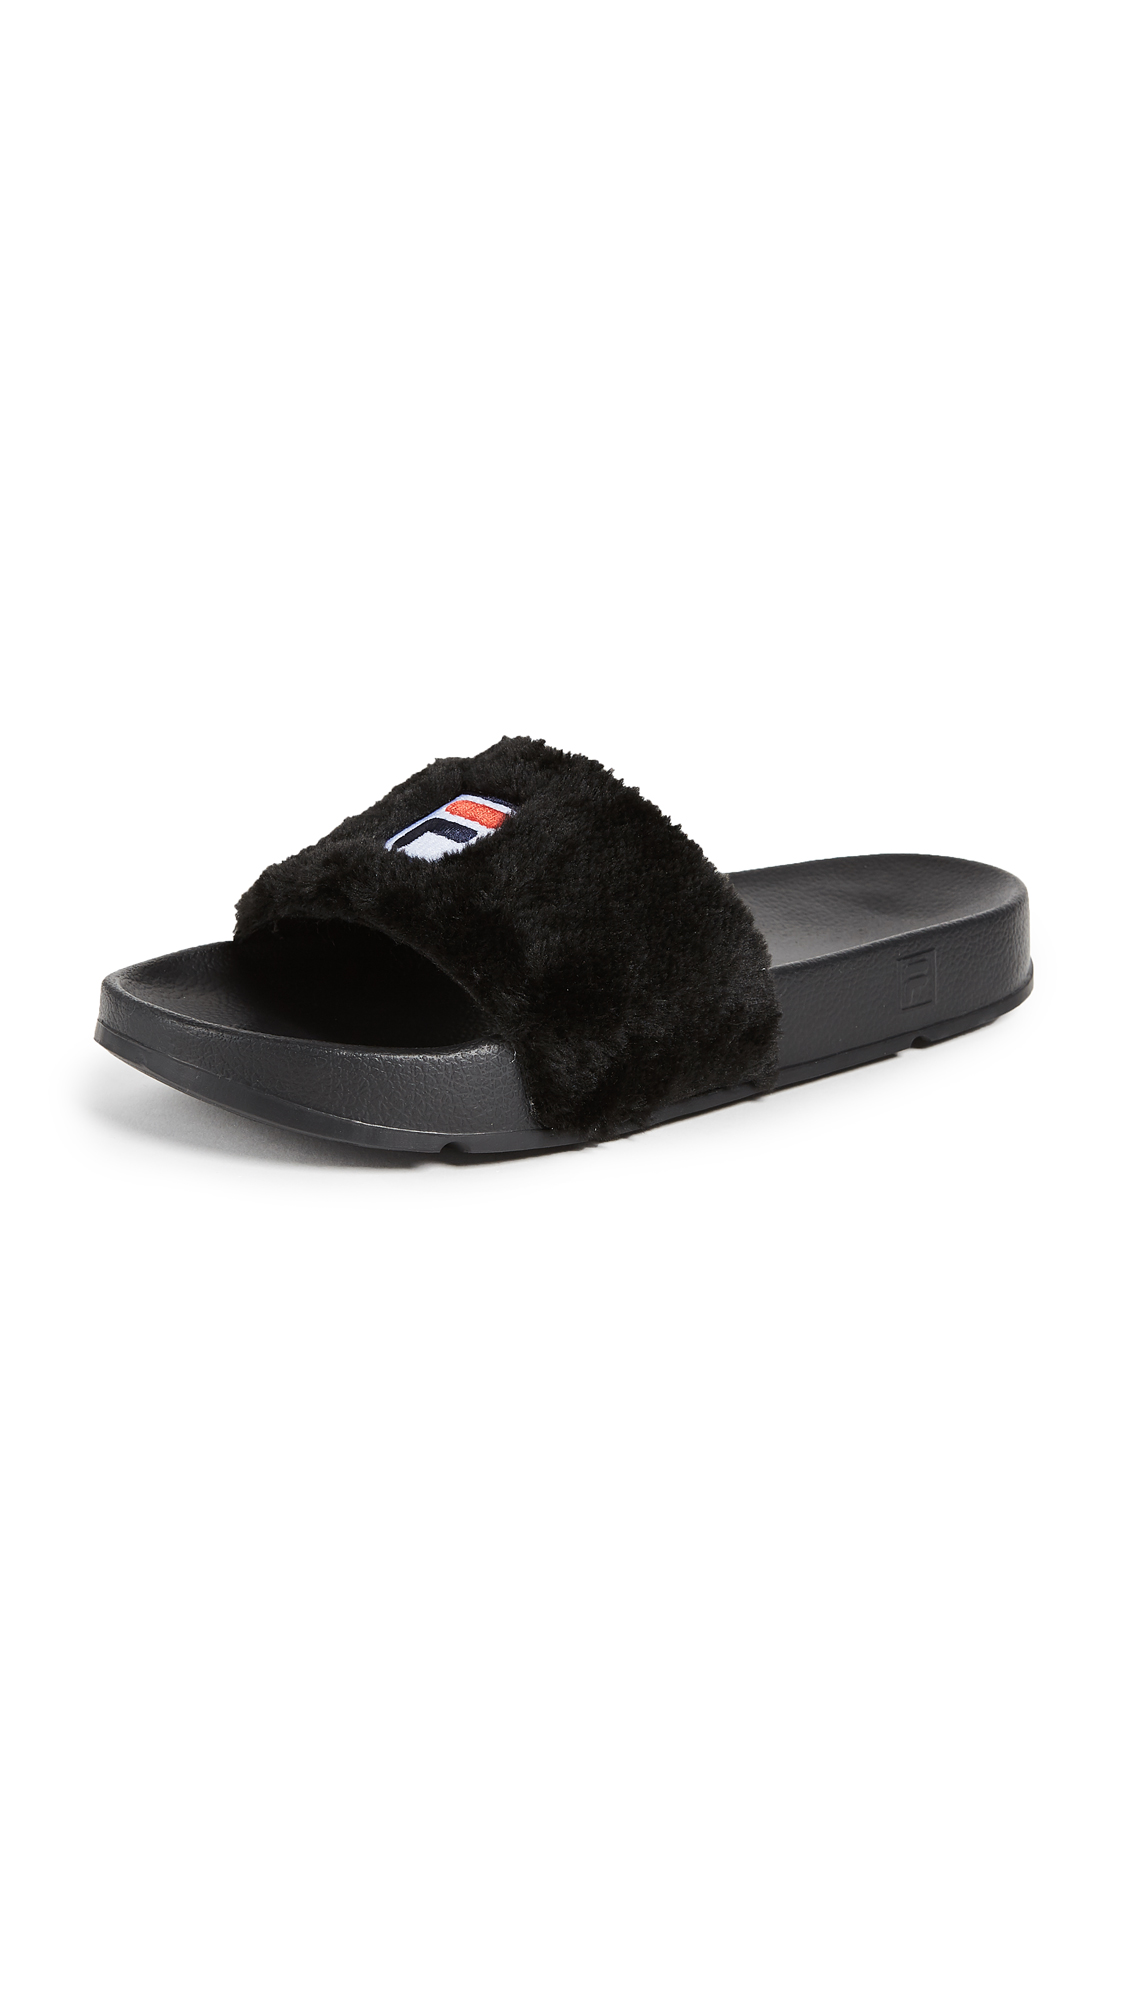 Baja East x FILA Sherpa Pool Slides - Black